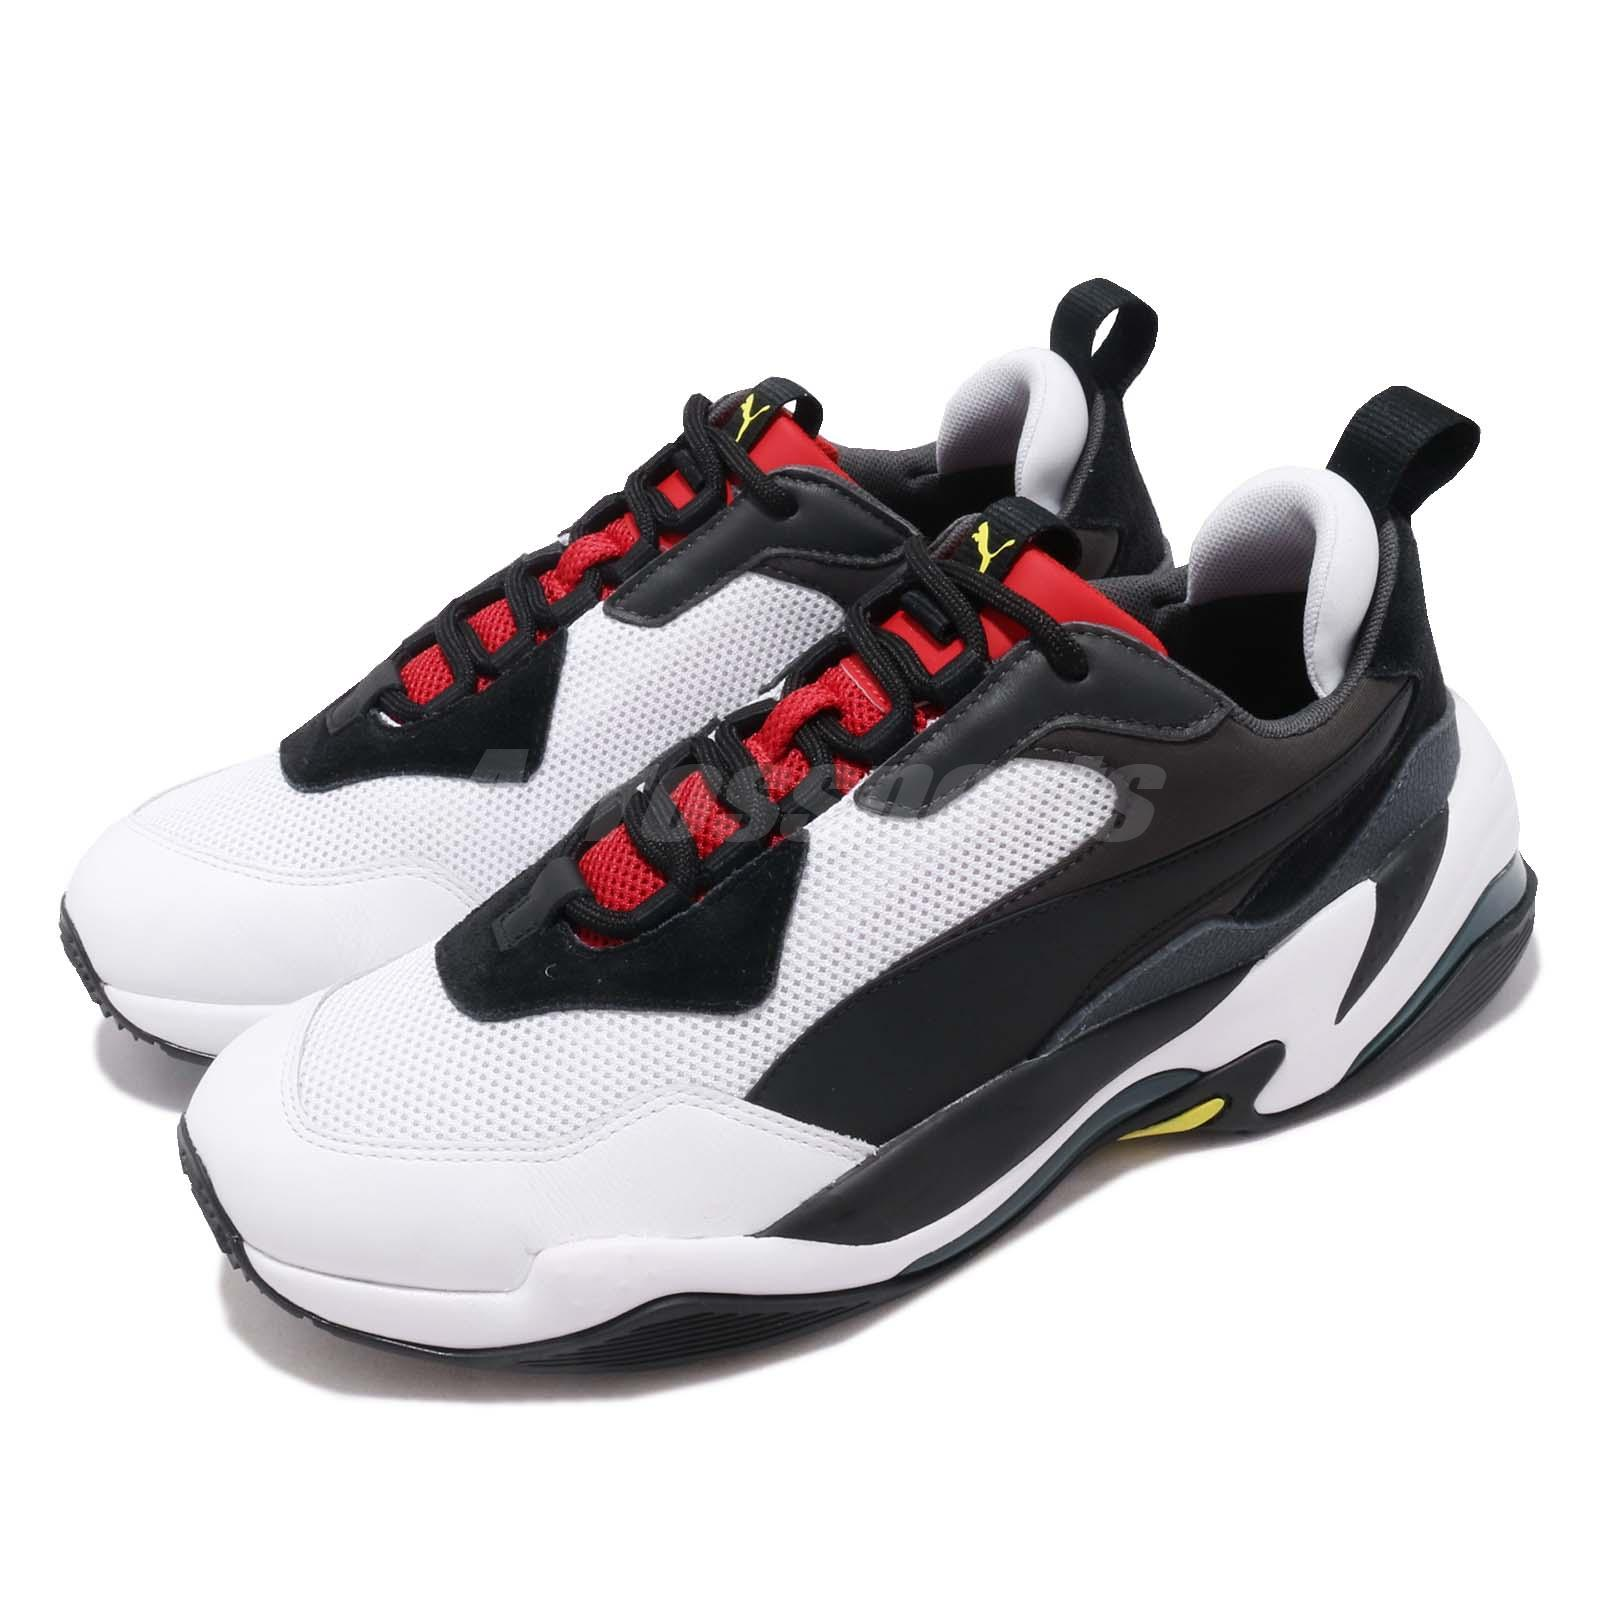 Details about Puma Thunder Spectra Black Red White Men Women Lifestyle  Daddy Shoes 367516-07